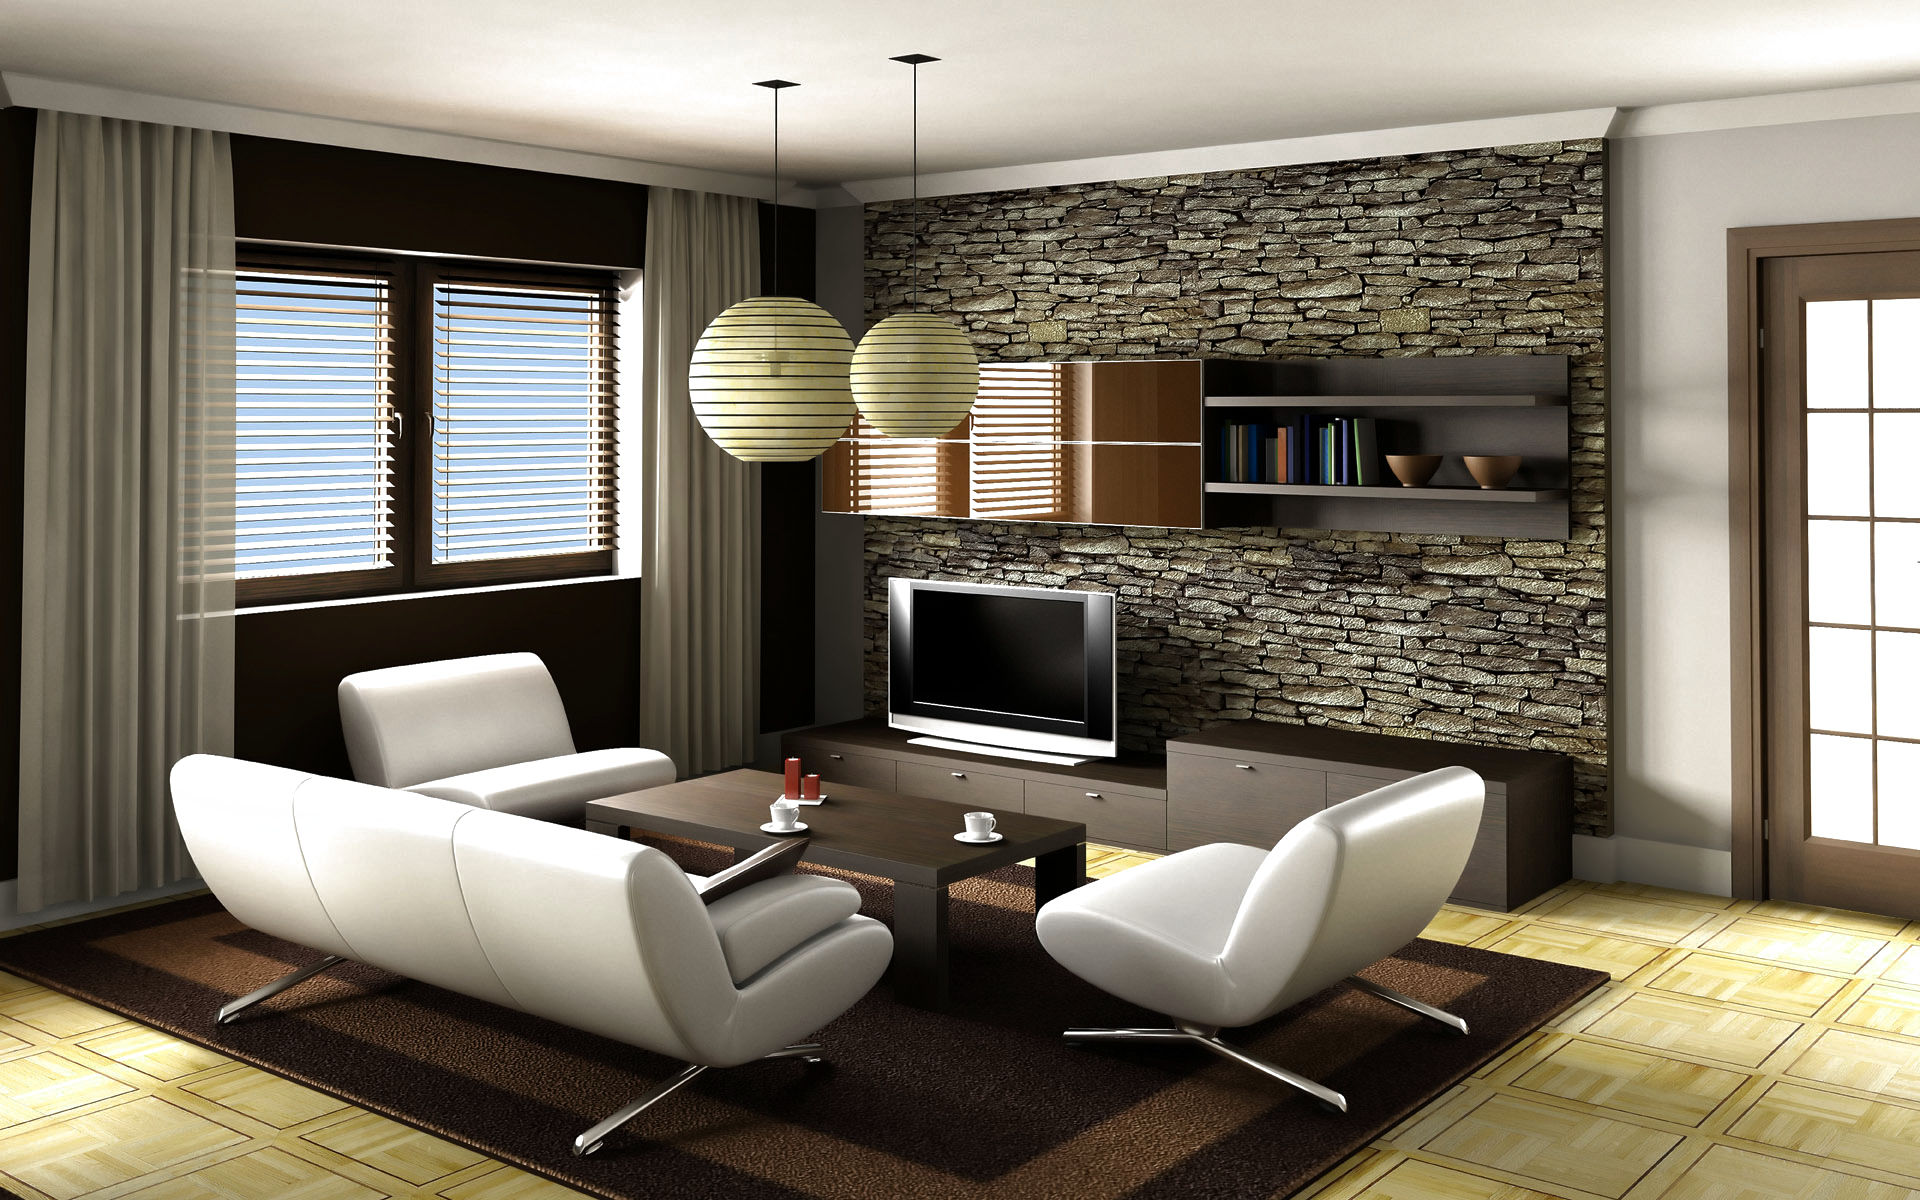 16 modern living room furniture ideas design hgnv com for Living room ideas furniture